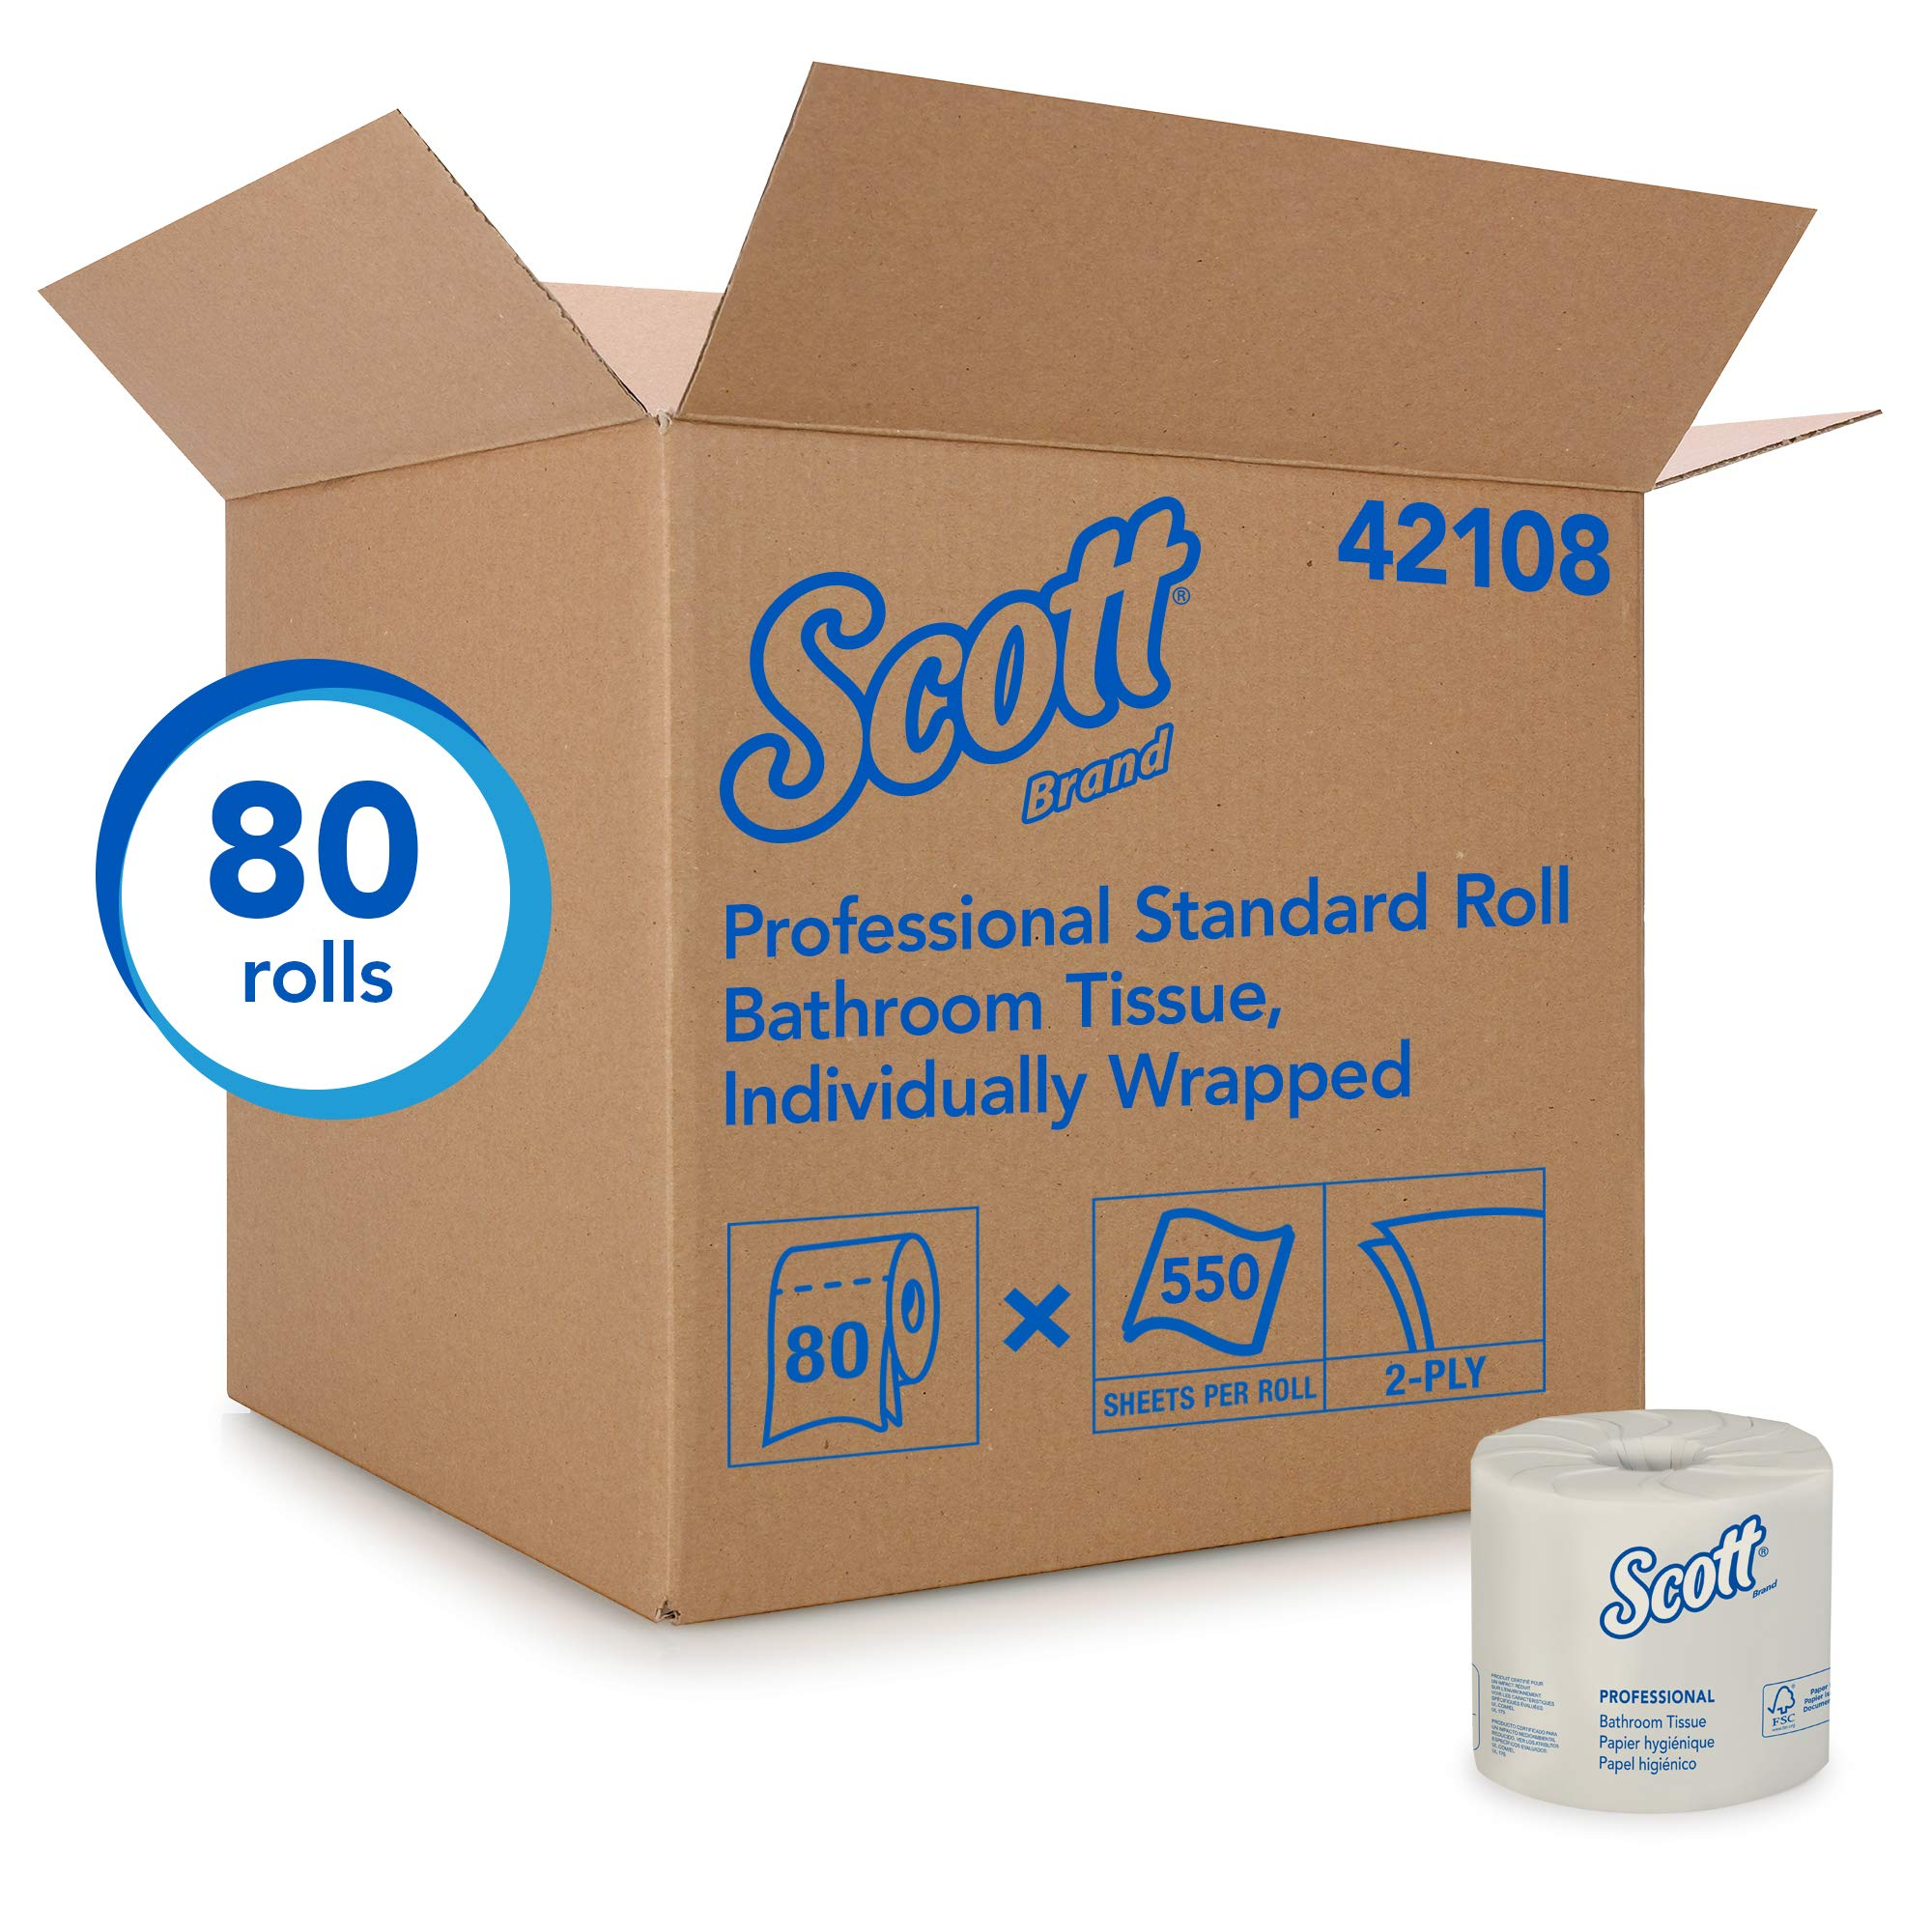 Scott Essential Professional Bulk Toilet Paper for Business (42108), Individually Wrapped Standard Rolls, 2-PLY, White, 80 Rolls / Case, 550 Sheets / Roll by Scott